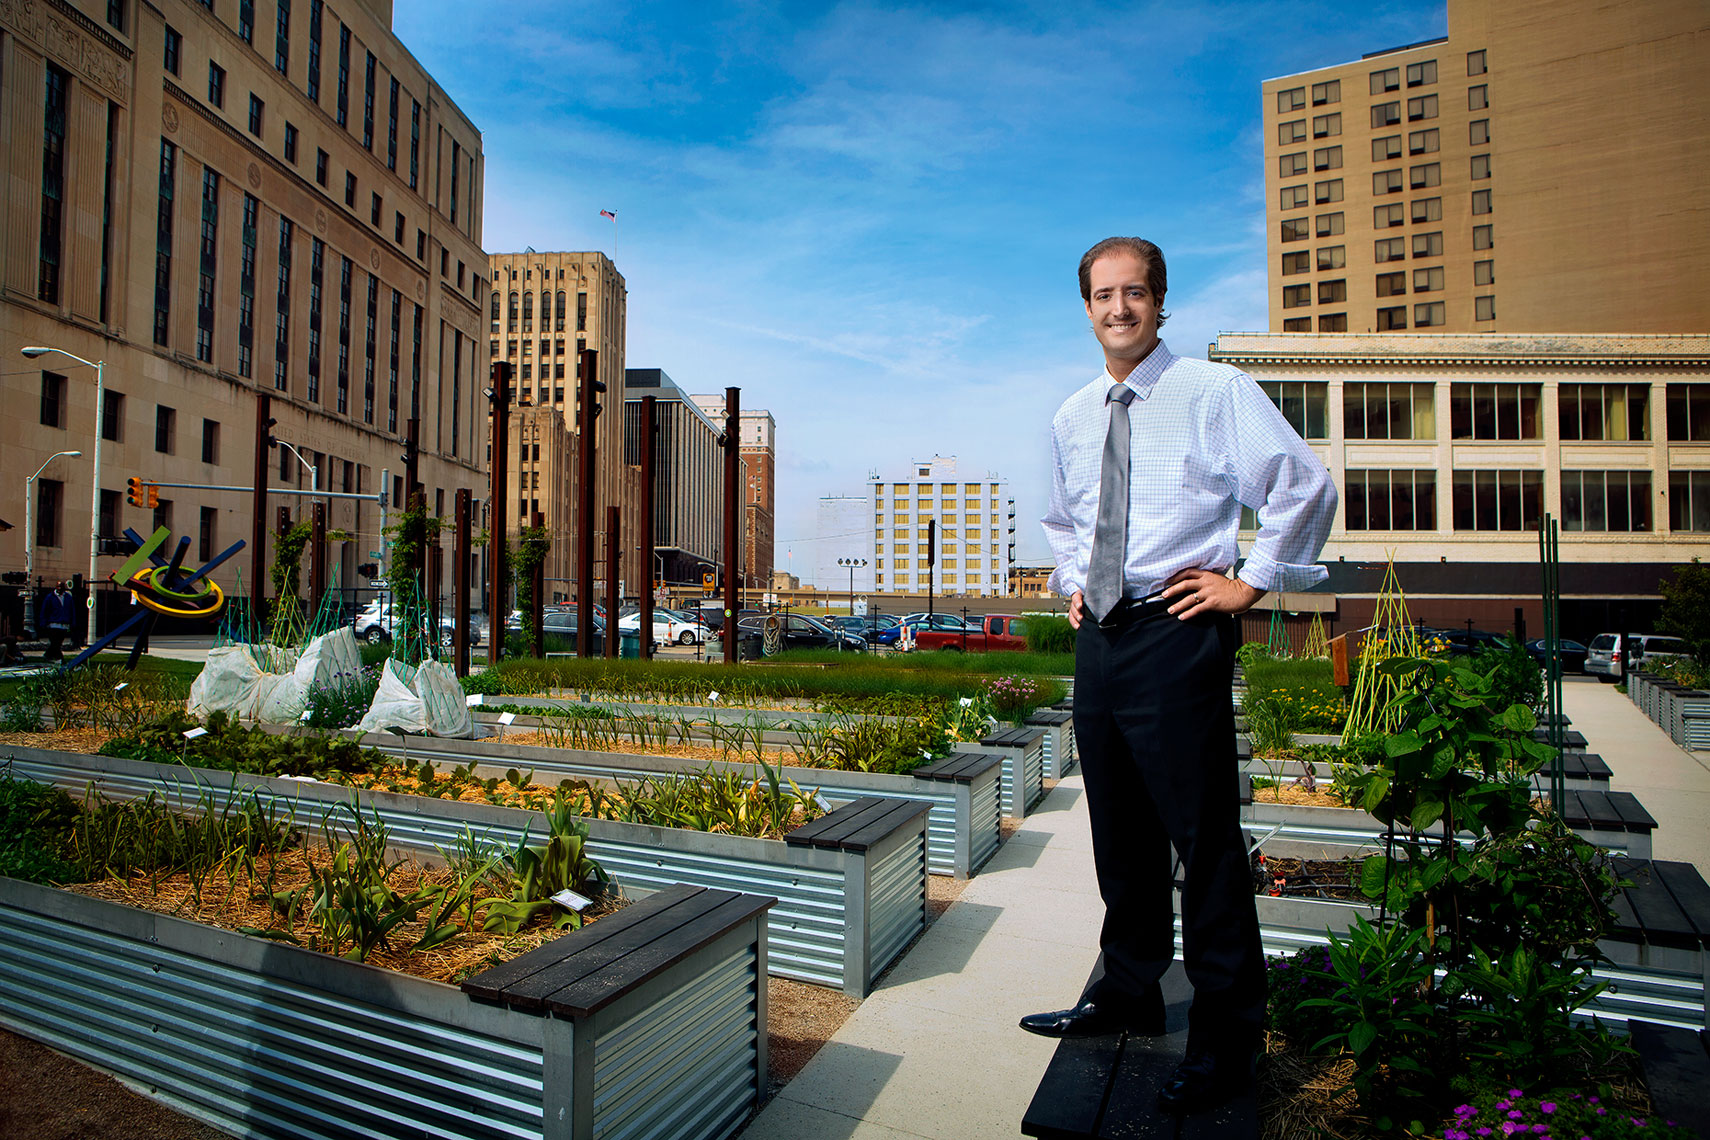 enviromental-portrait-of-detroit-attorney-joseph-sgroi-by-photographer-scott-stewart